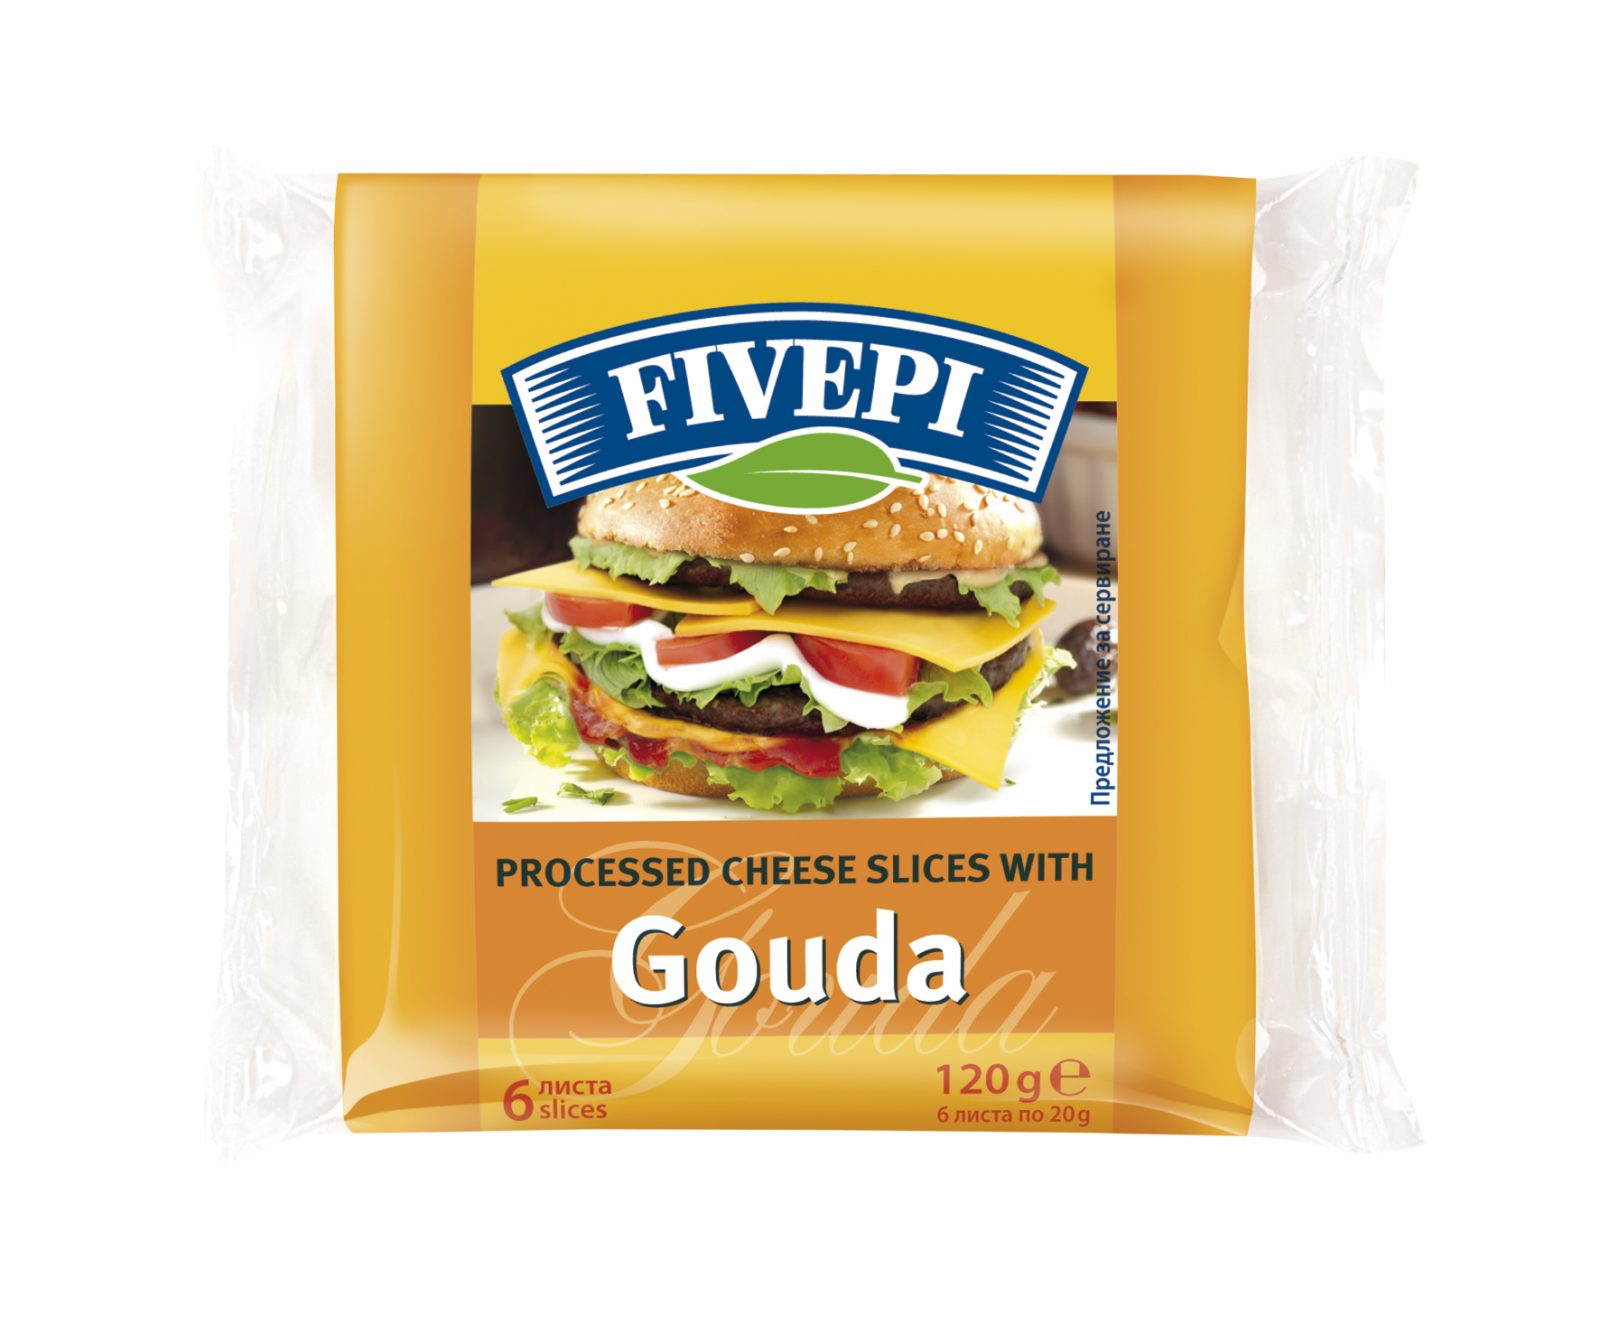 Fivepi processed cheese with Gouda